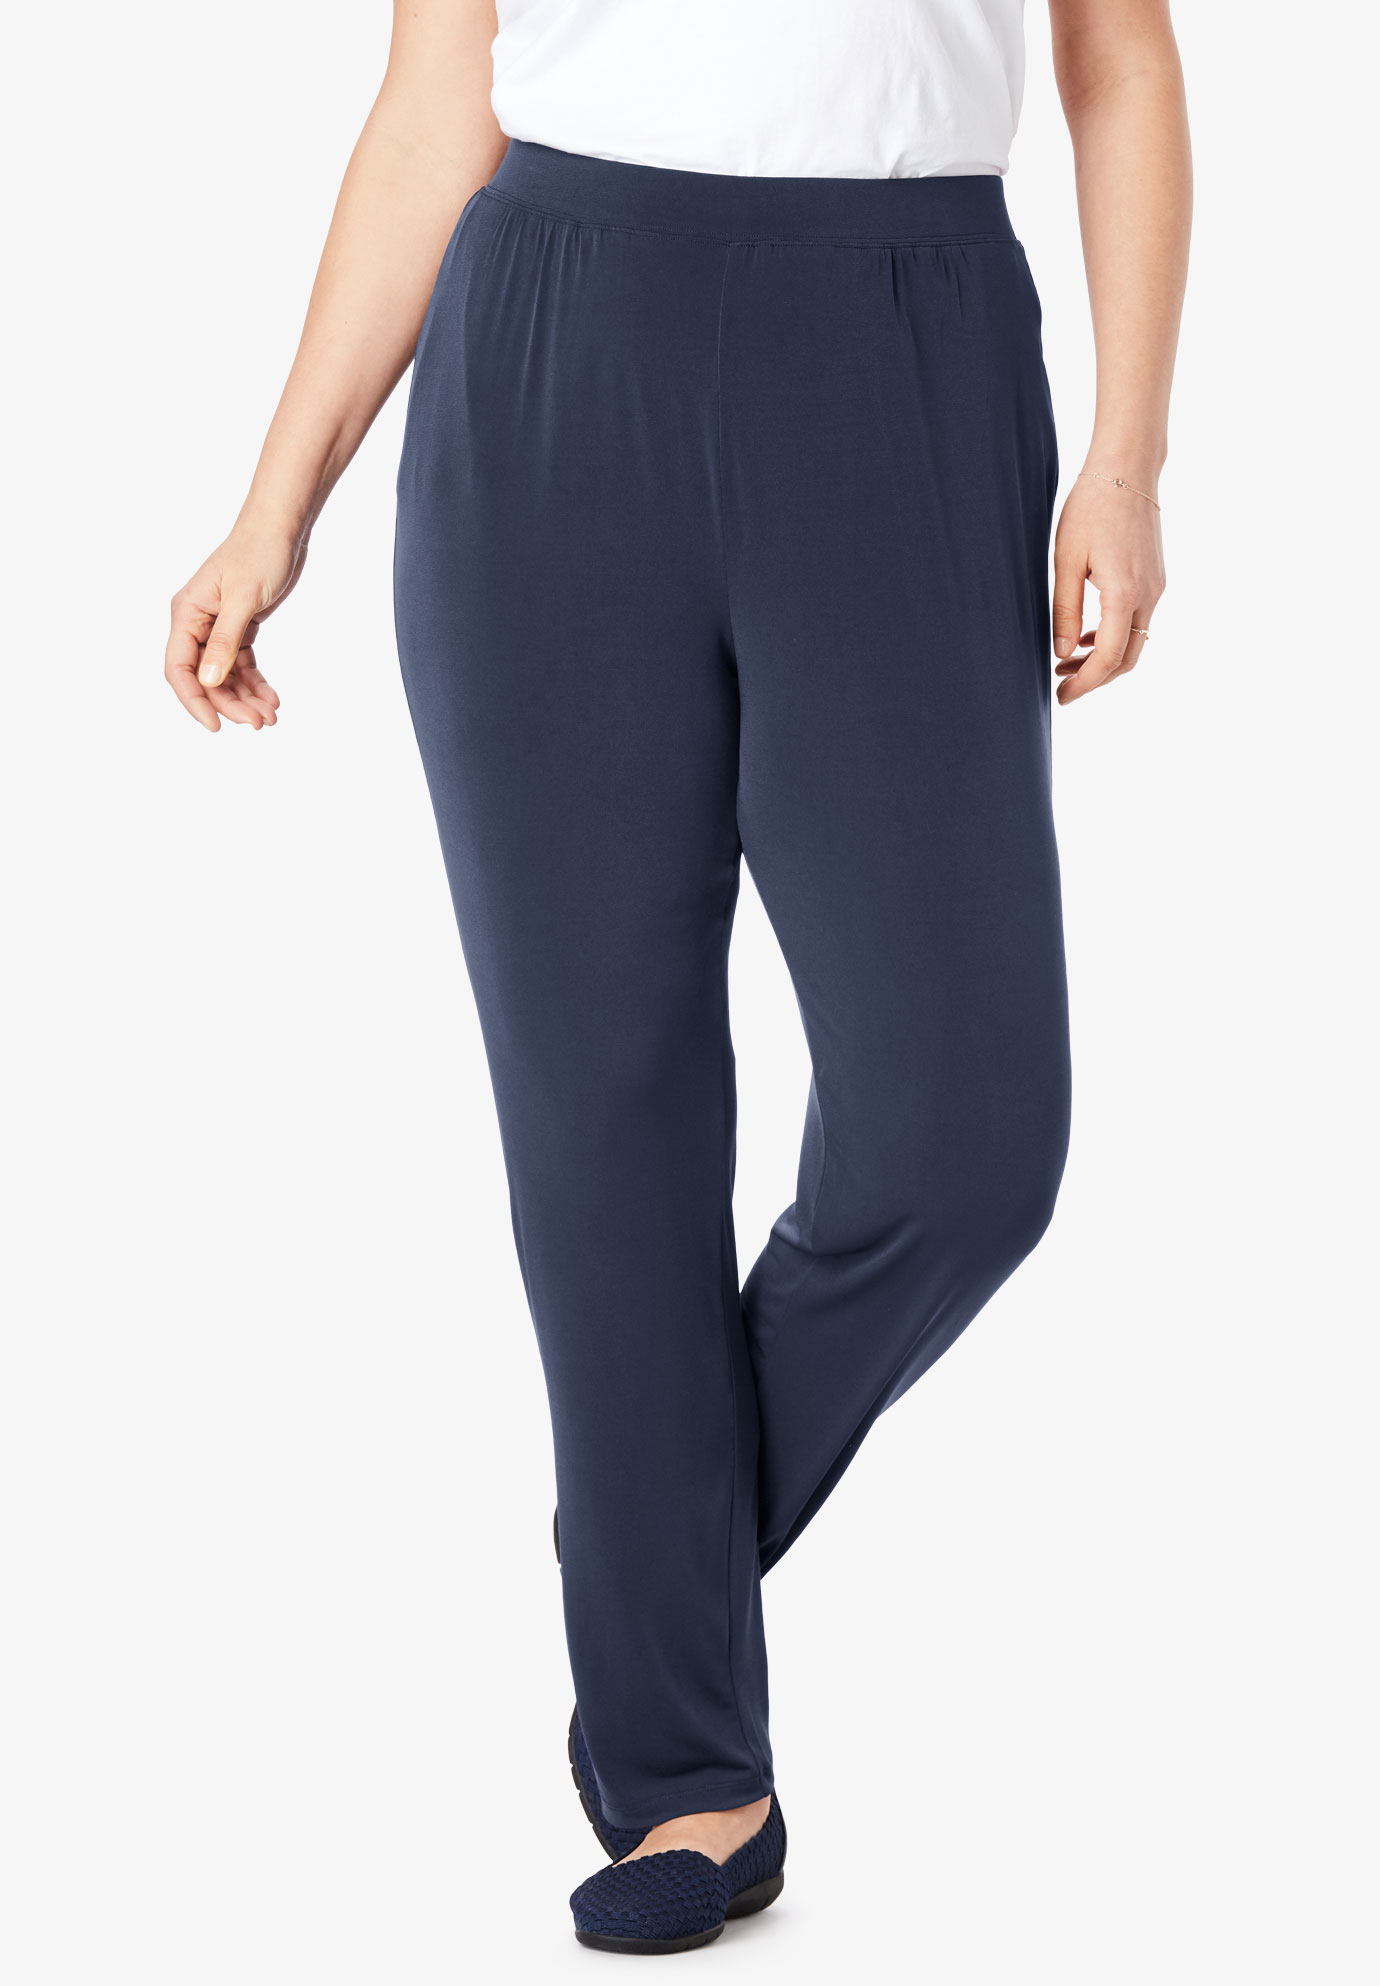 Best Dressed® Essential Slim Leg Pant,